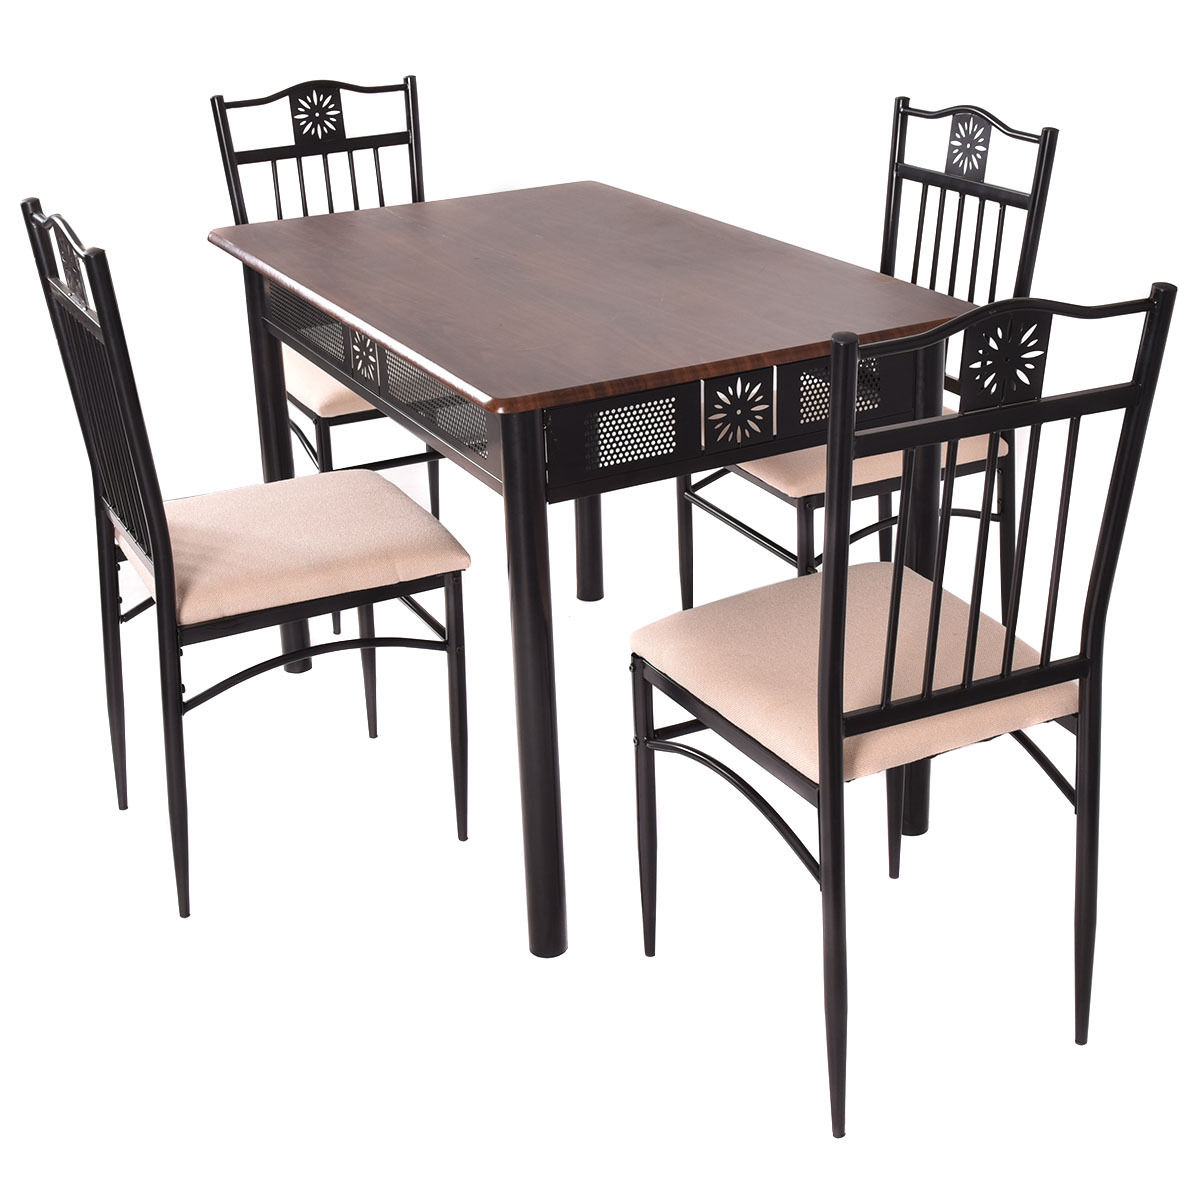 Costway 5 Piece Dining Set Wood Metal Table and 4 Chairs